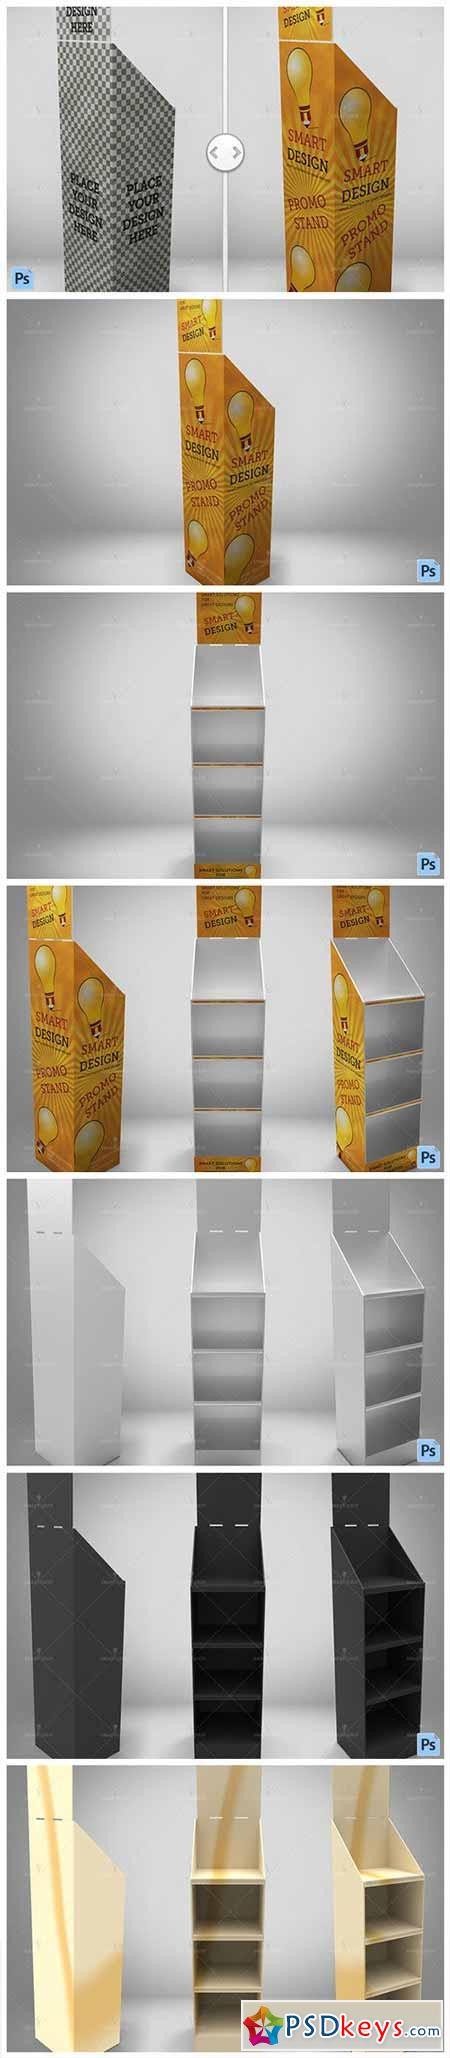 Promotional Store Shelf Stand Mockup 558652